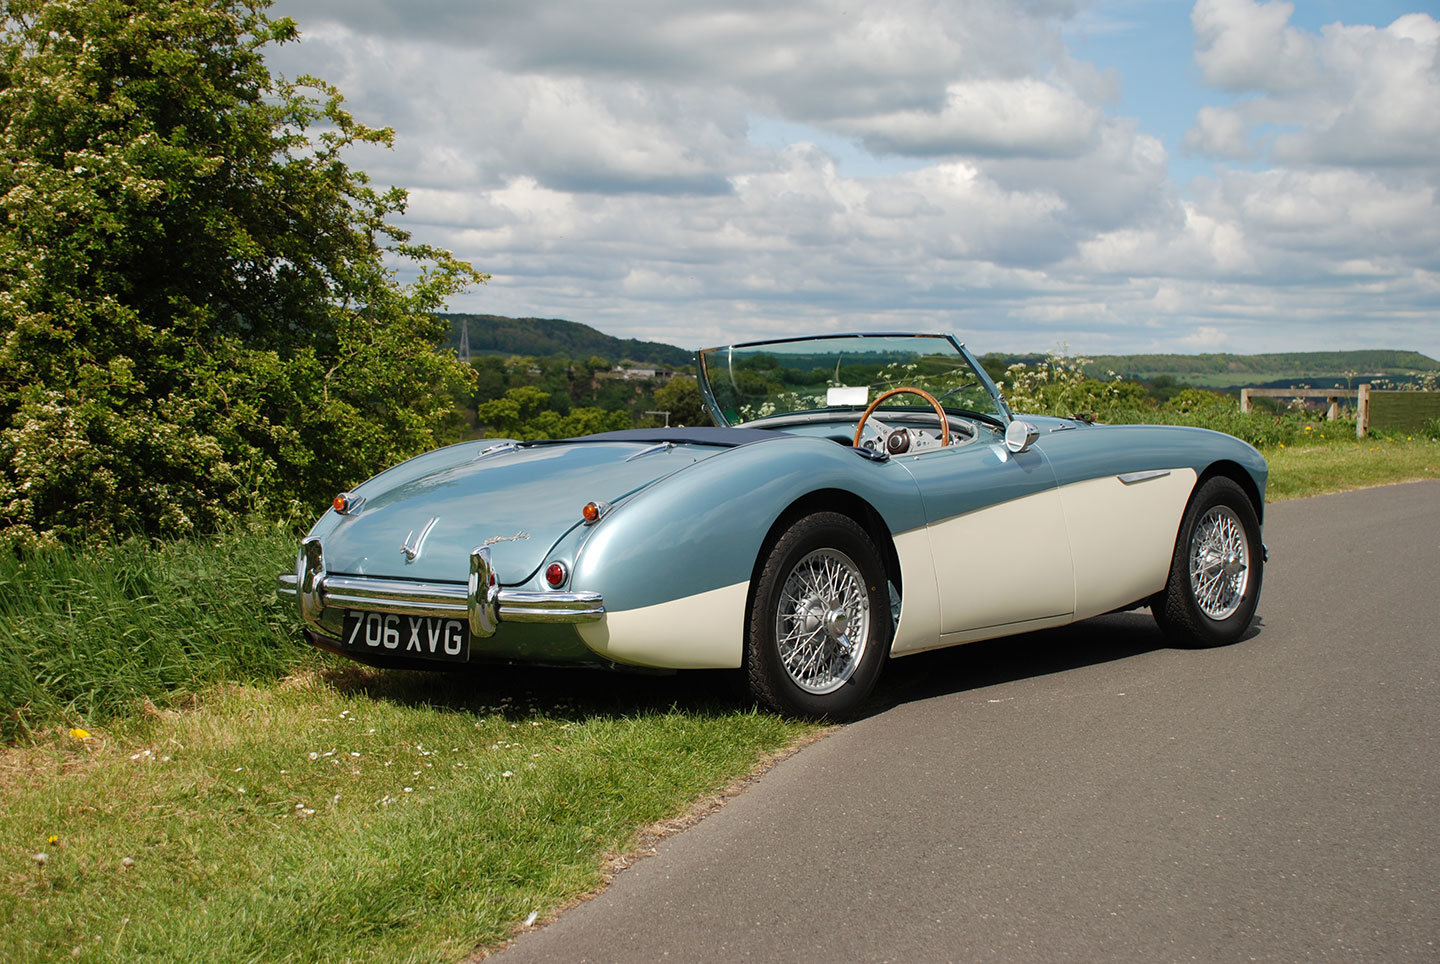 1955 Austin Healey 100/4 BN2 M Specification For Sale (picture 2 of 10)